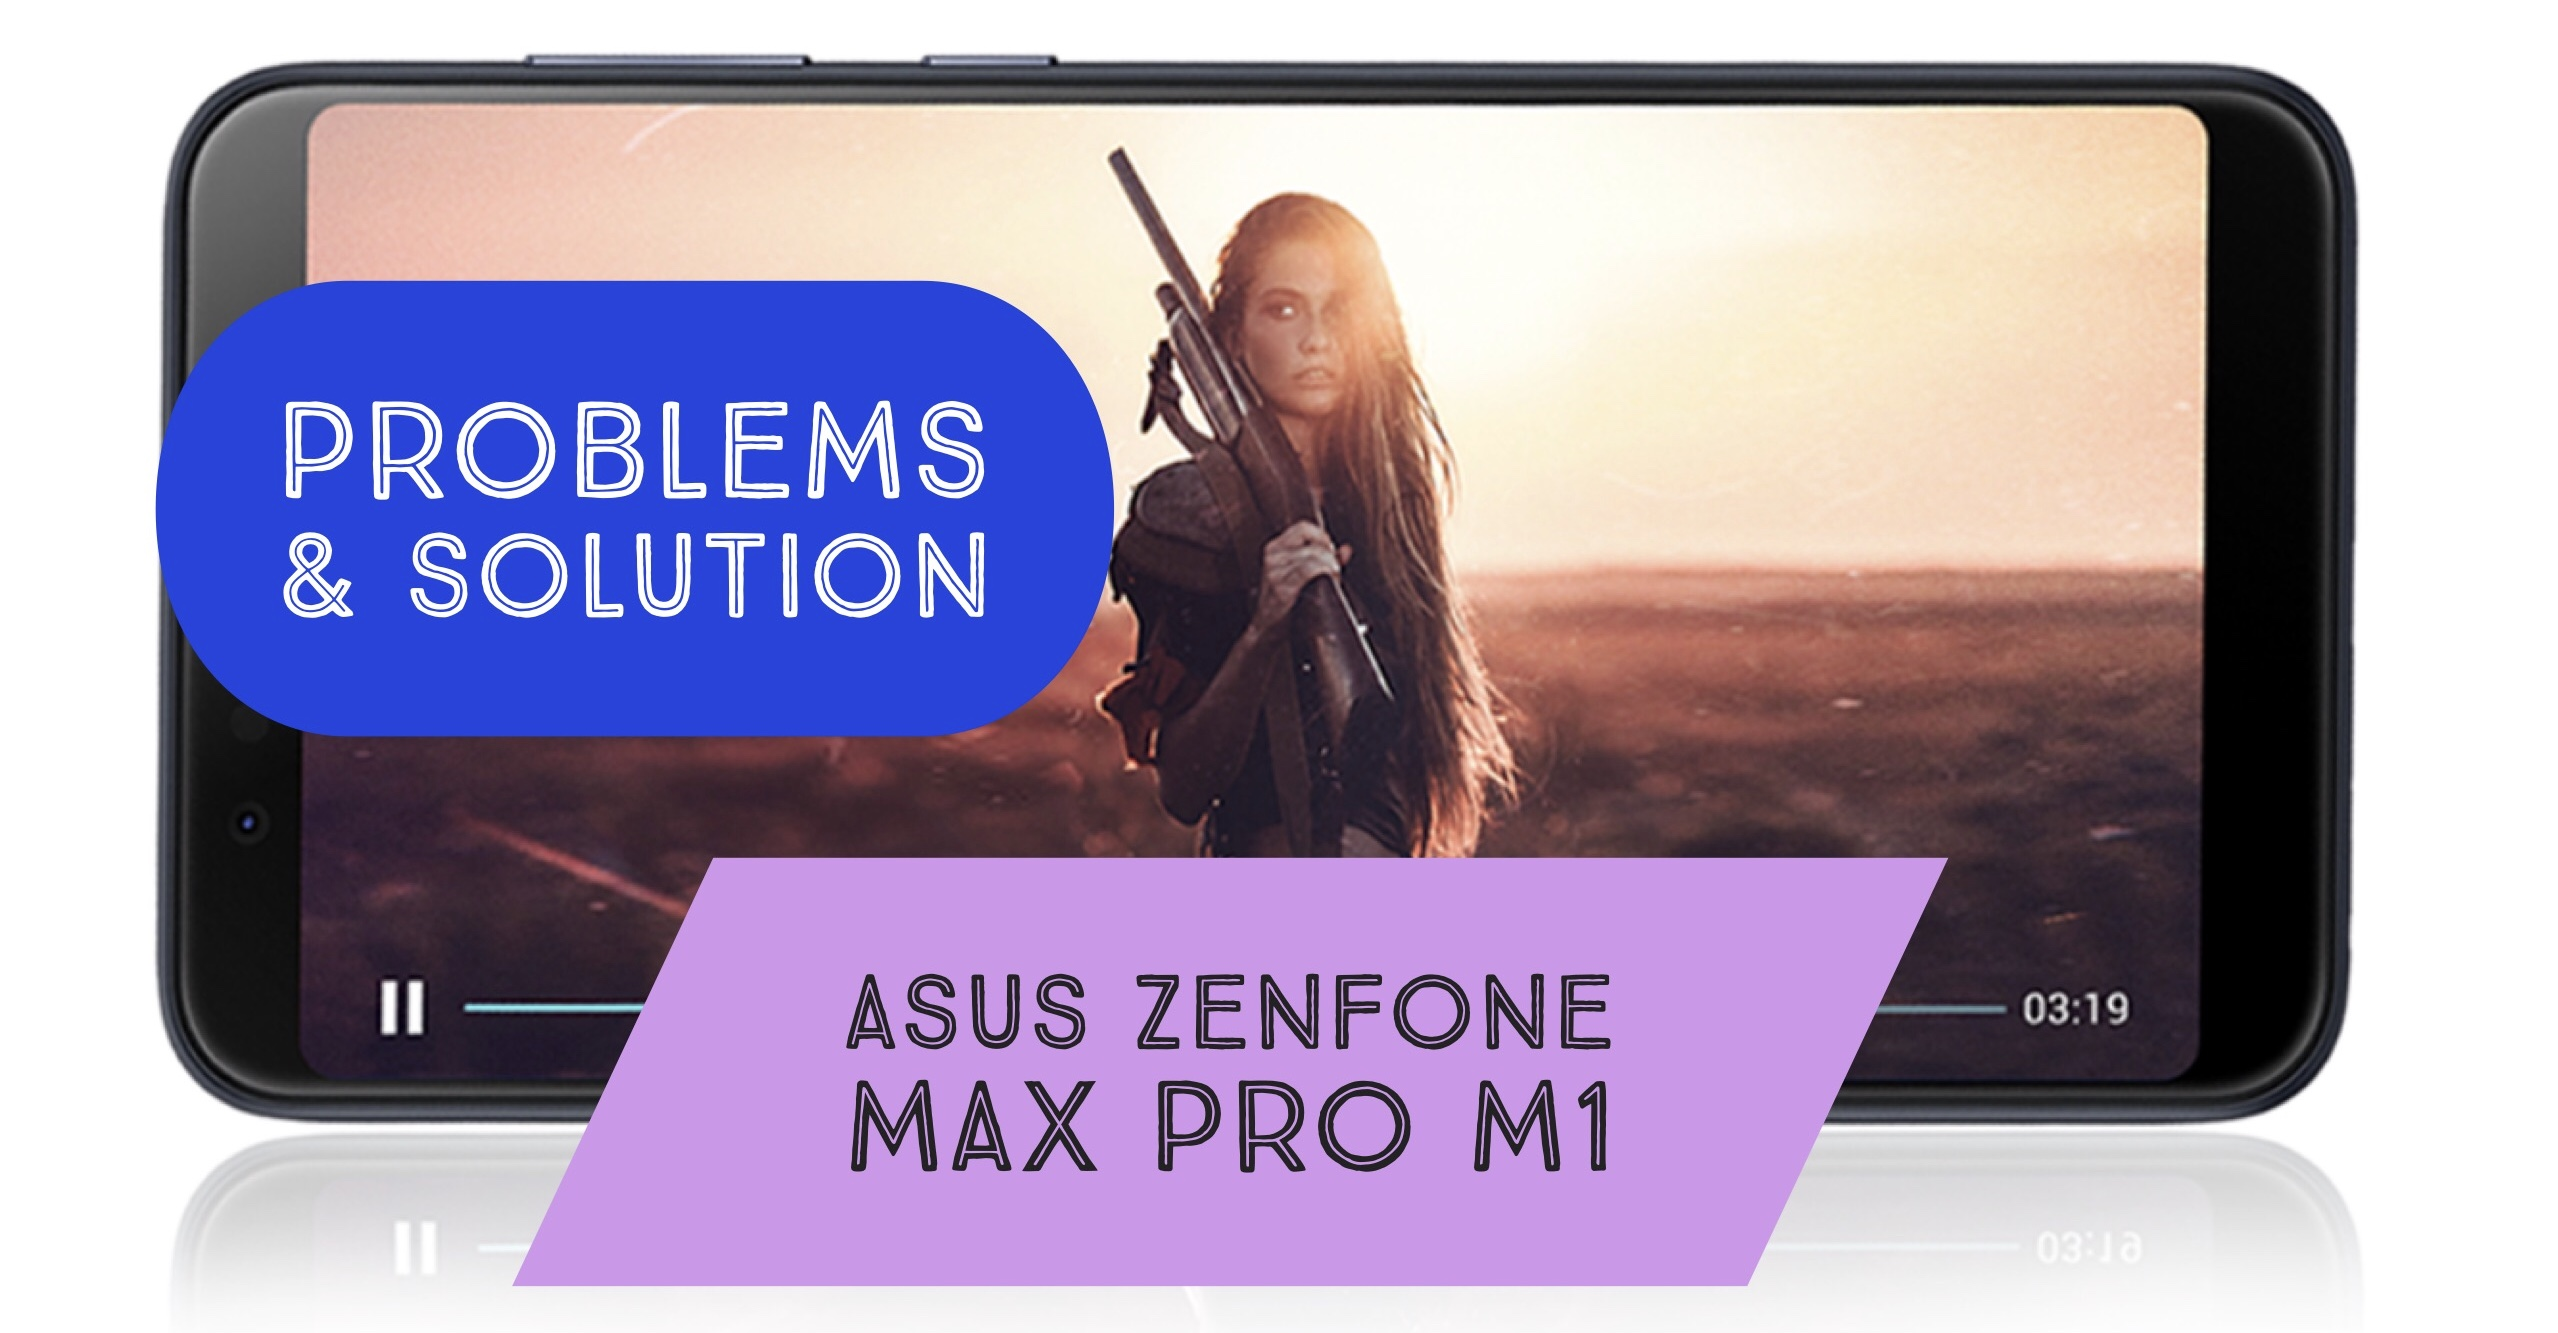 Asus Zenfone Max Pro M1 Problems & How to Fix Them: Tips & Tricks